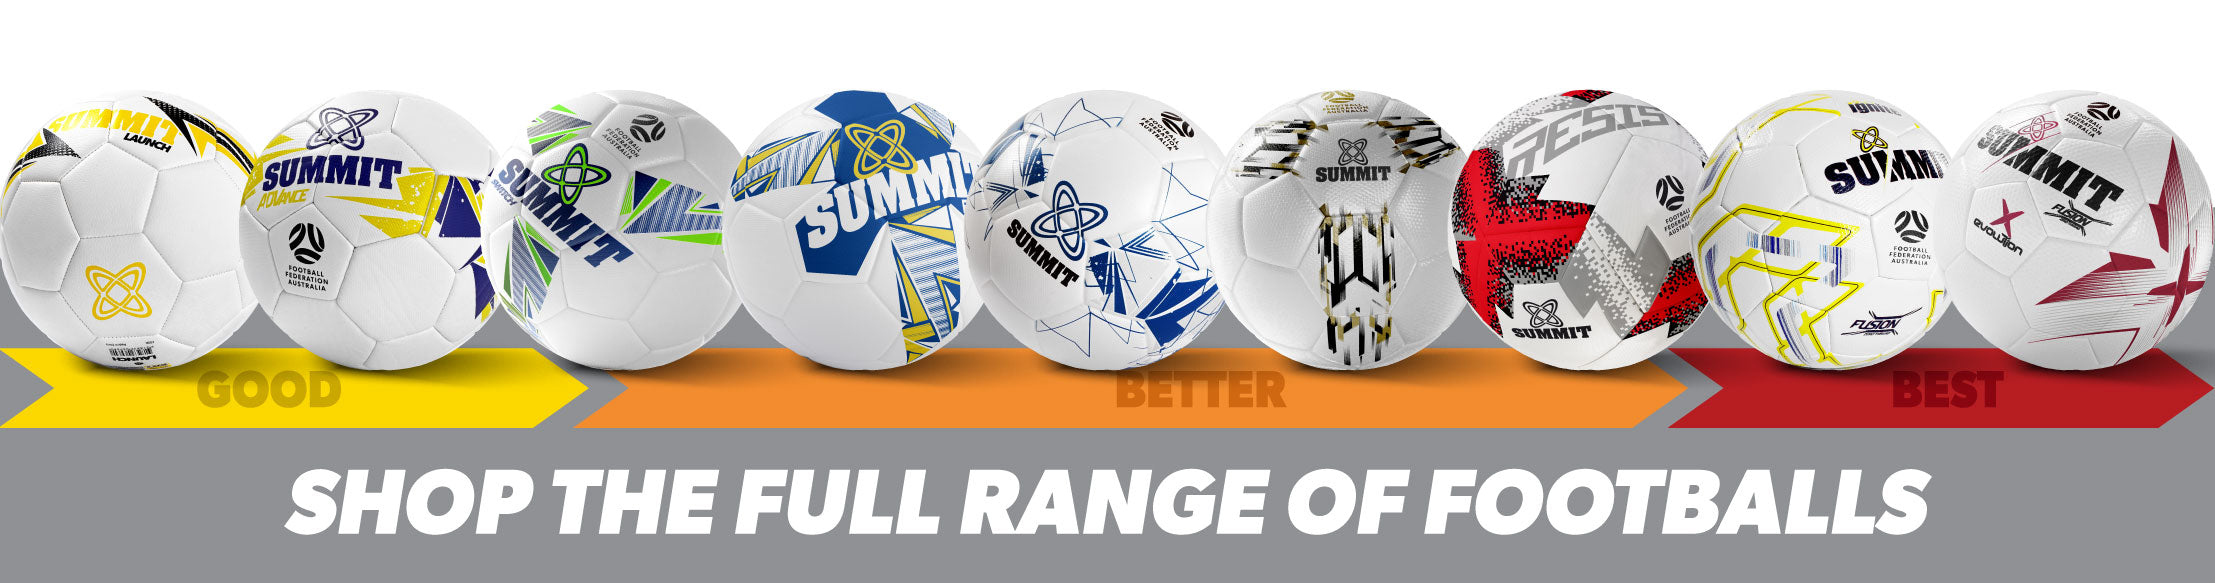 SUMMIT Sport has a full range of footballs including both 12 panel and 32 panel- shop the full range of balls here.